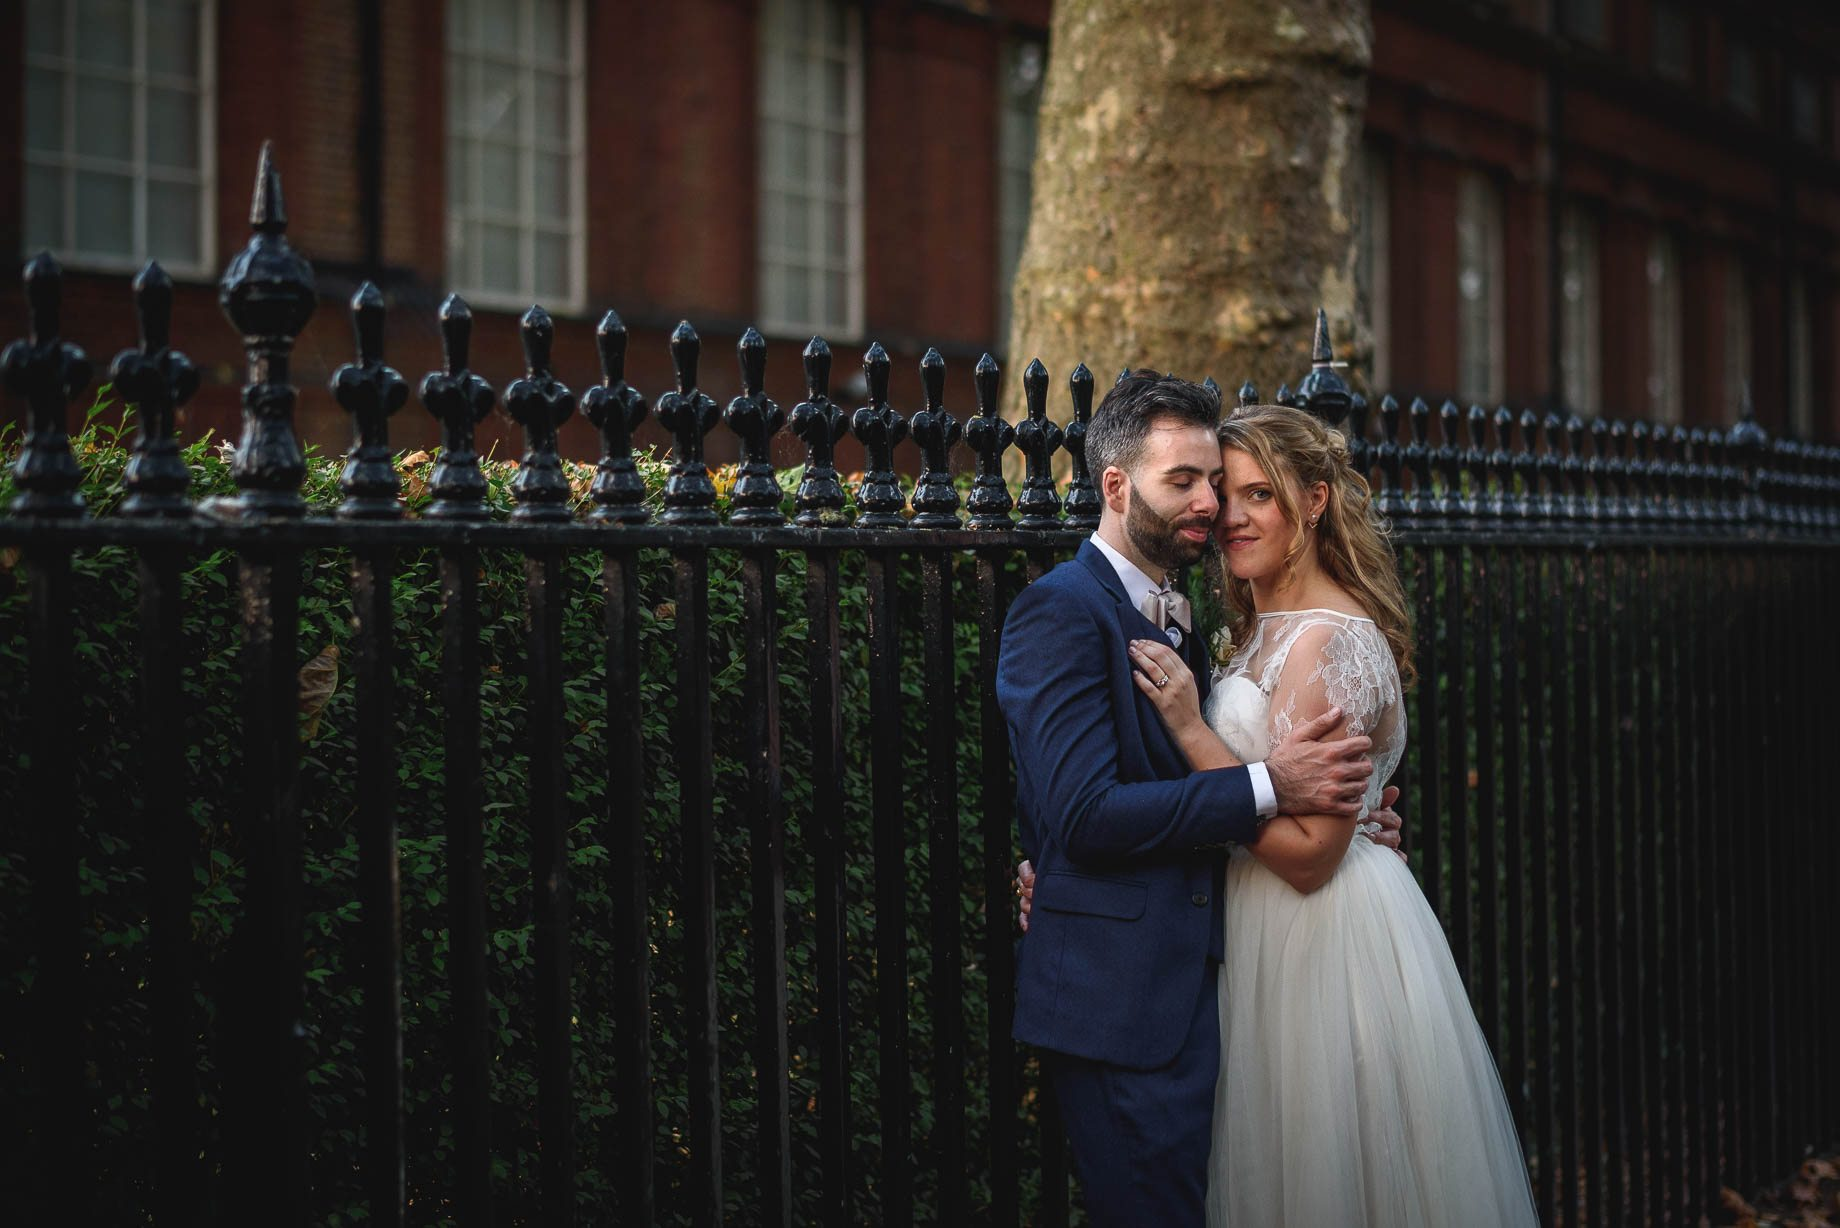 London Wedding Photography - Guy Collier Photography - LJ + Russell (136 of 155)